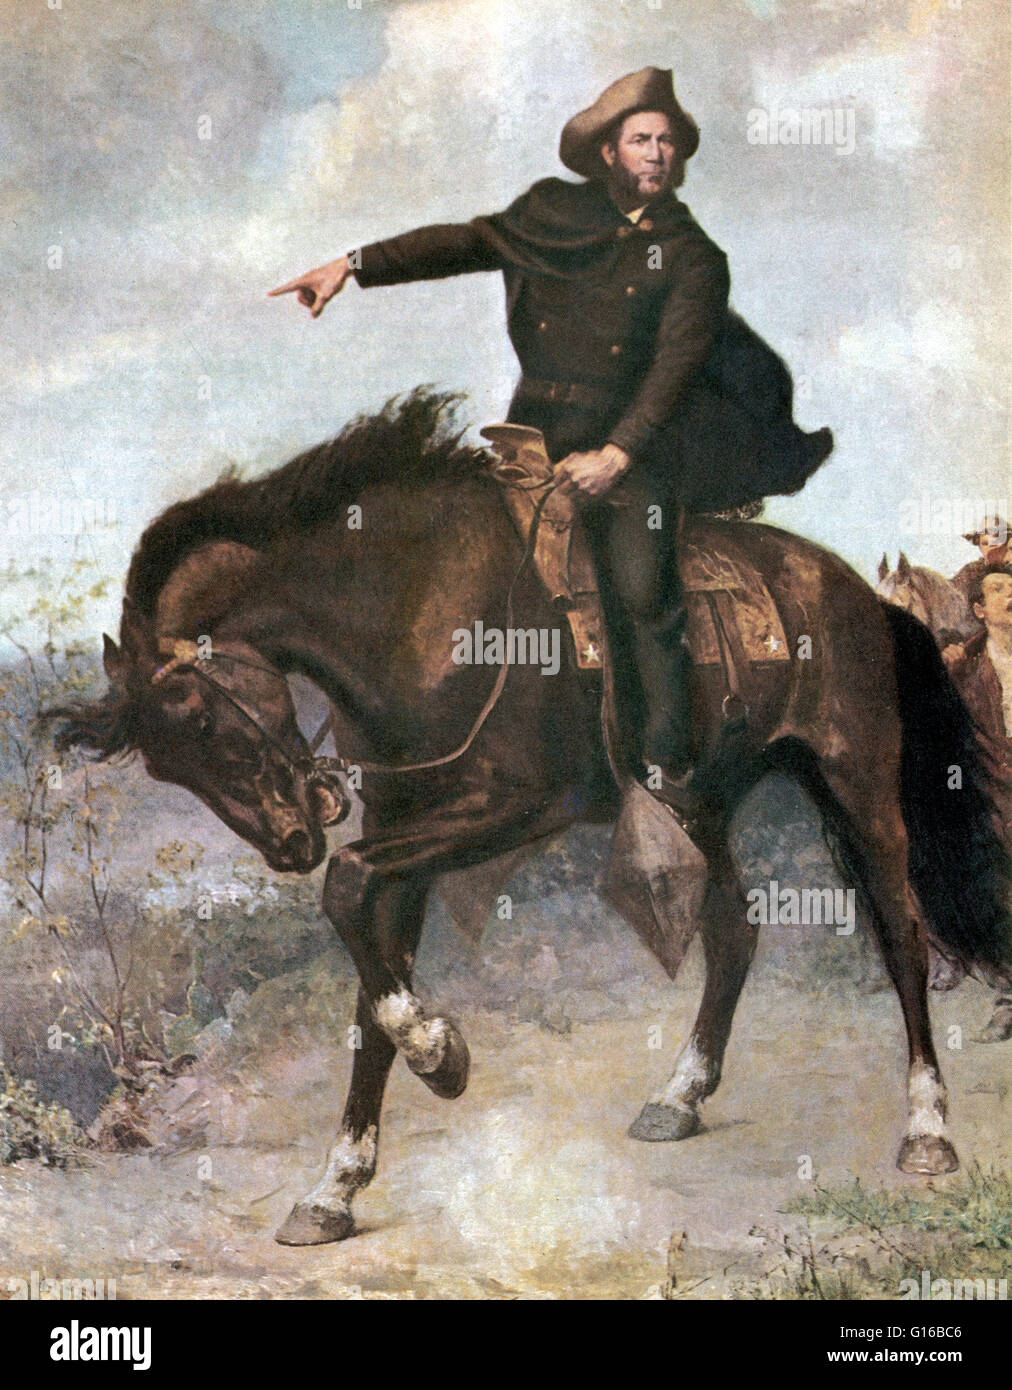 General Sam Houston At The Battle Of San Jacinto In 1836